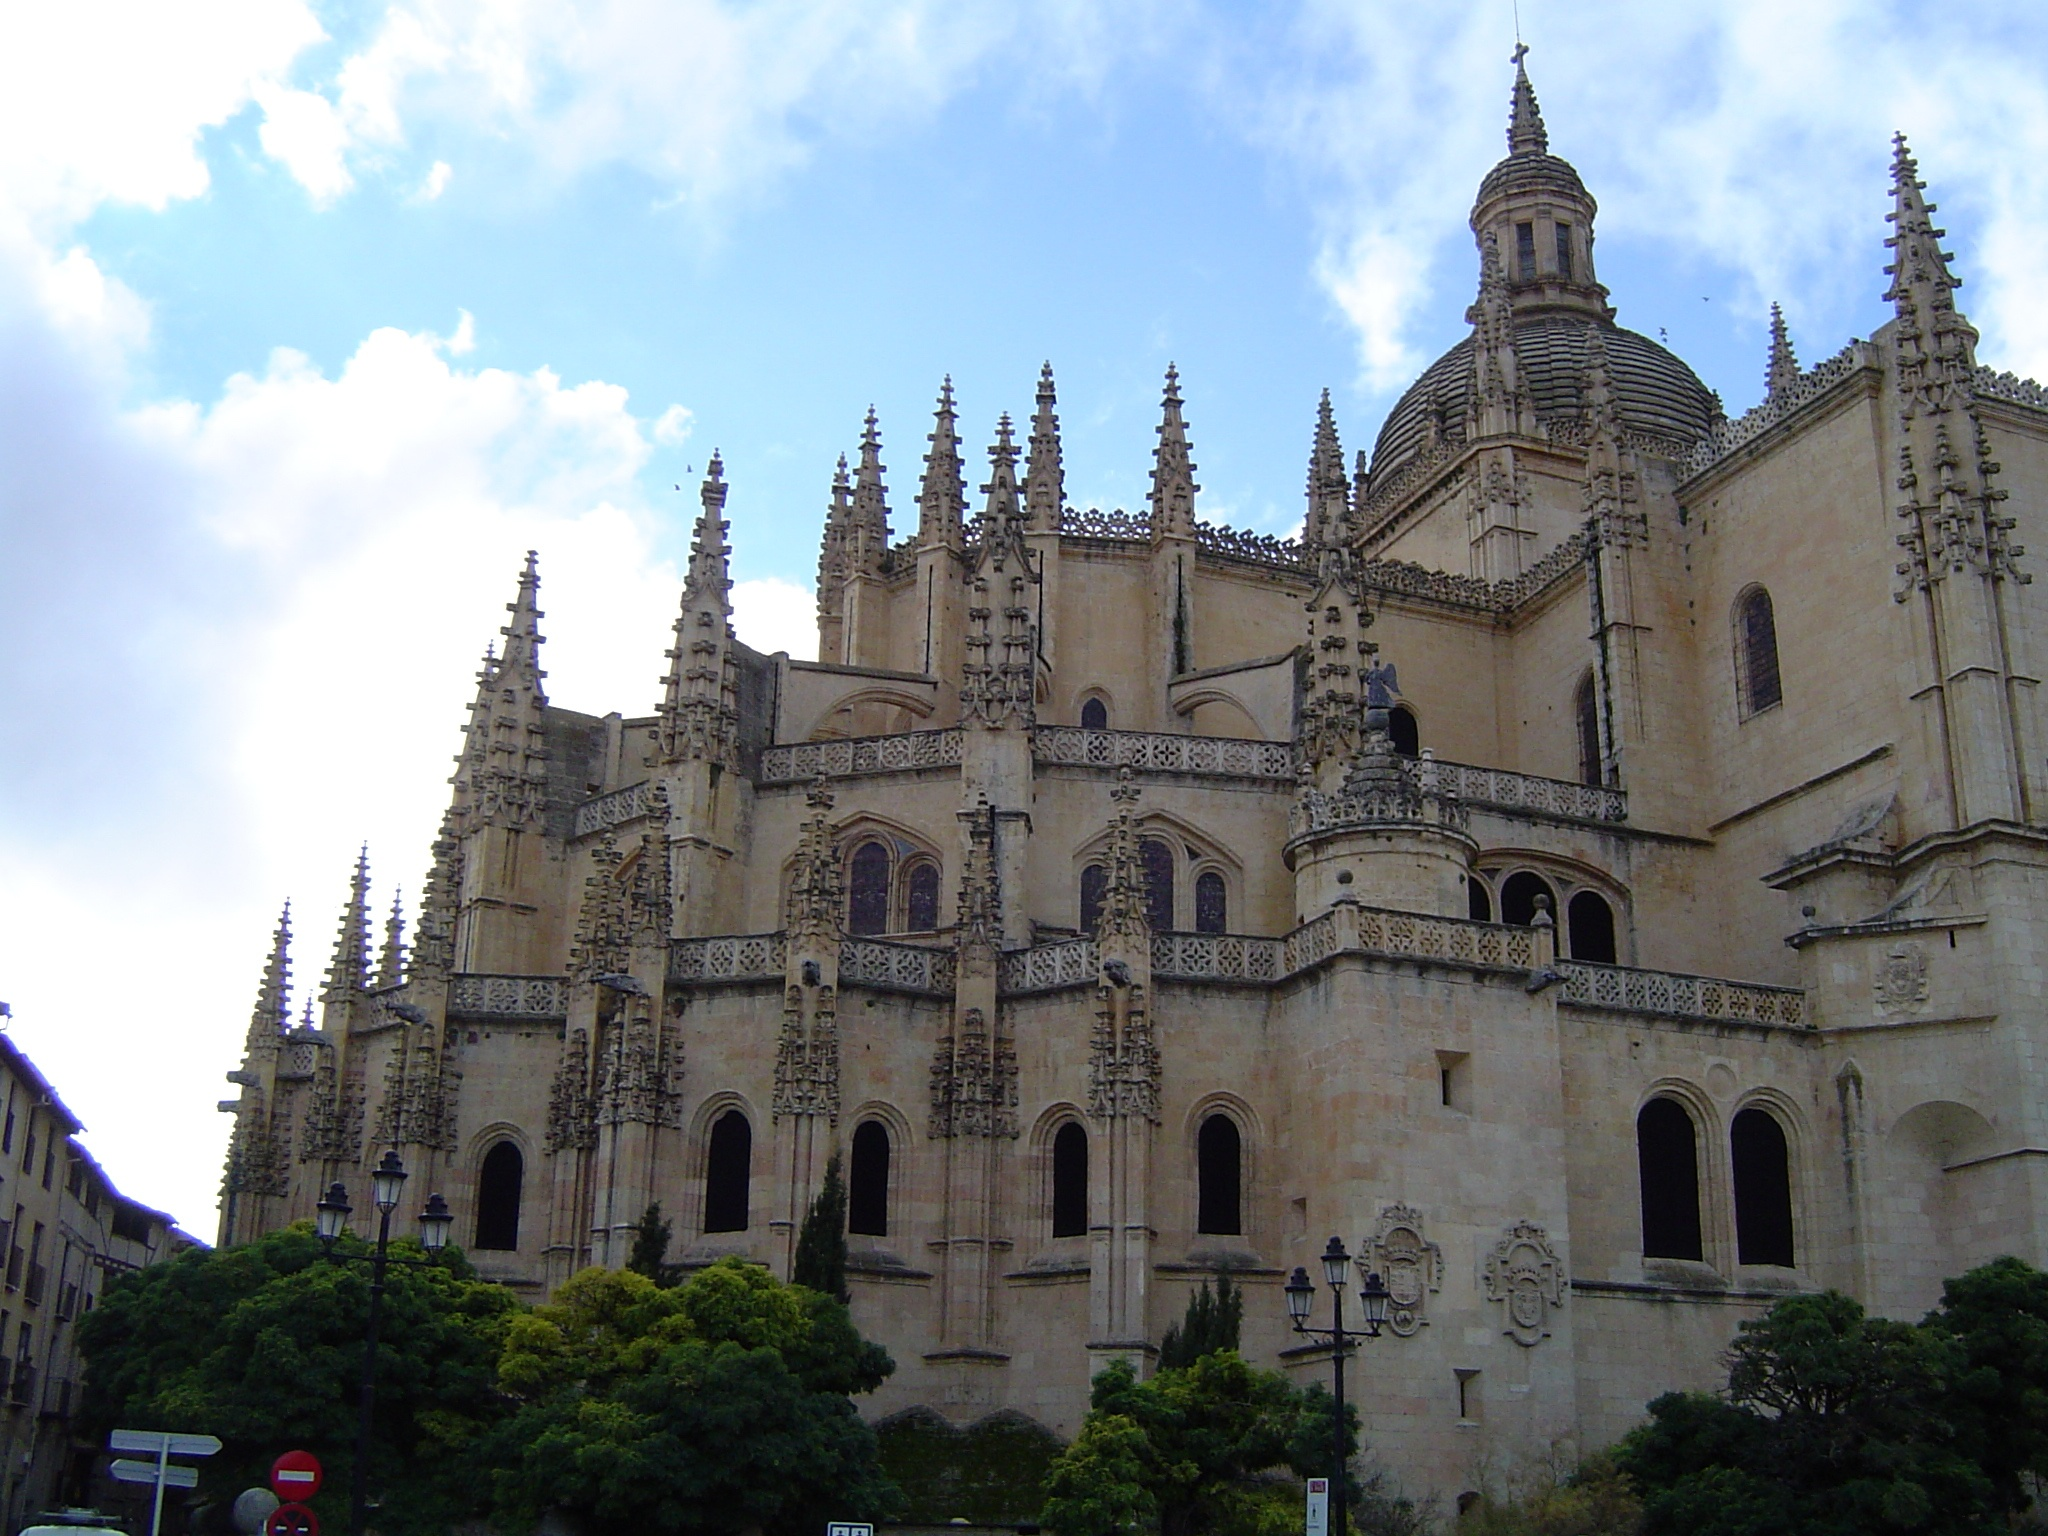 File:Catedral de Segovia during afternoon.jpg